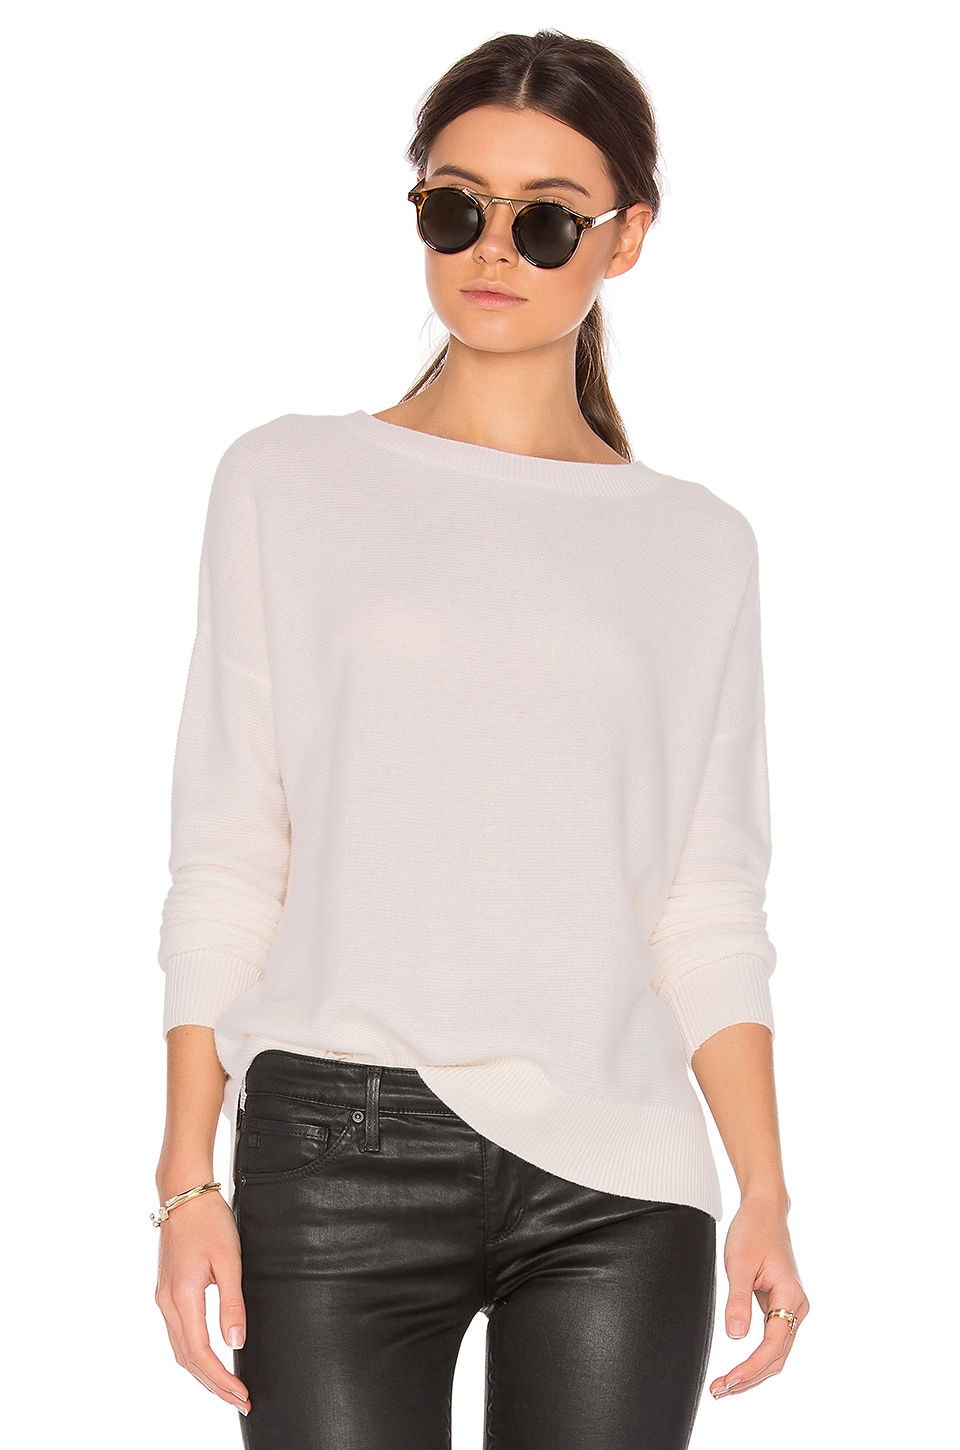 Cheshire Cashmere Sweater by CHARLI